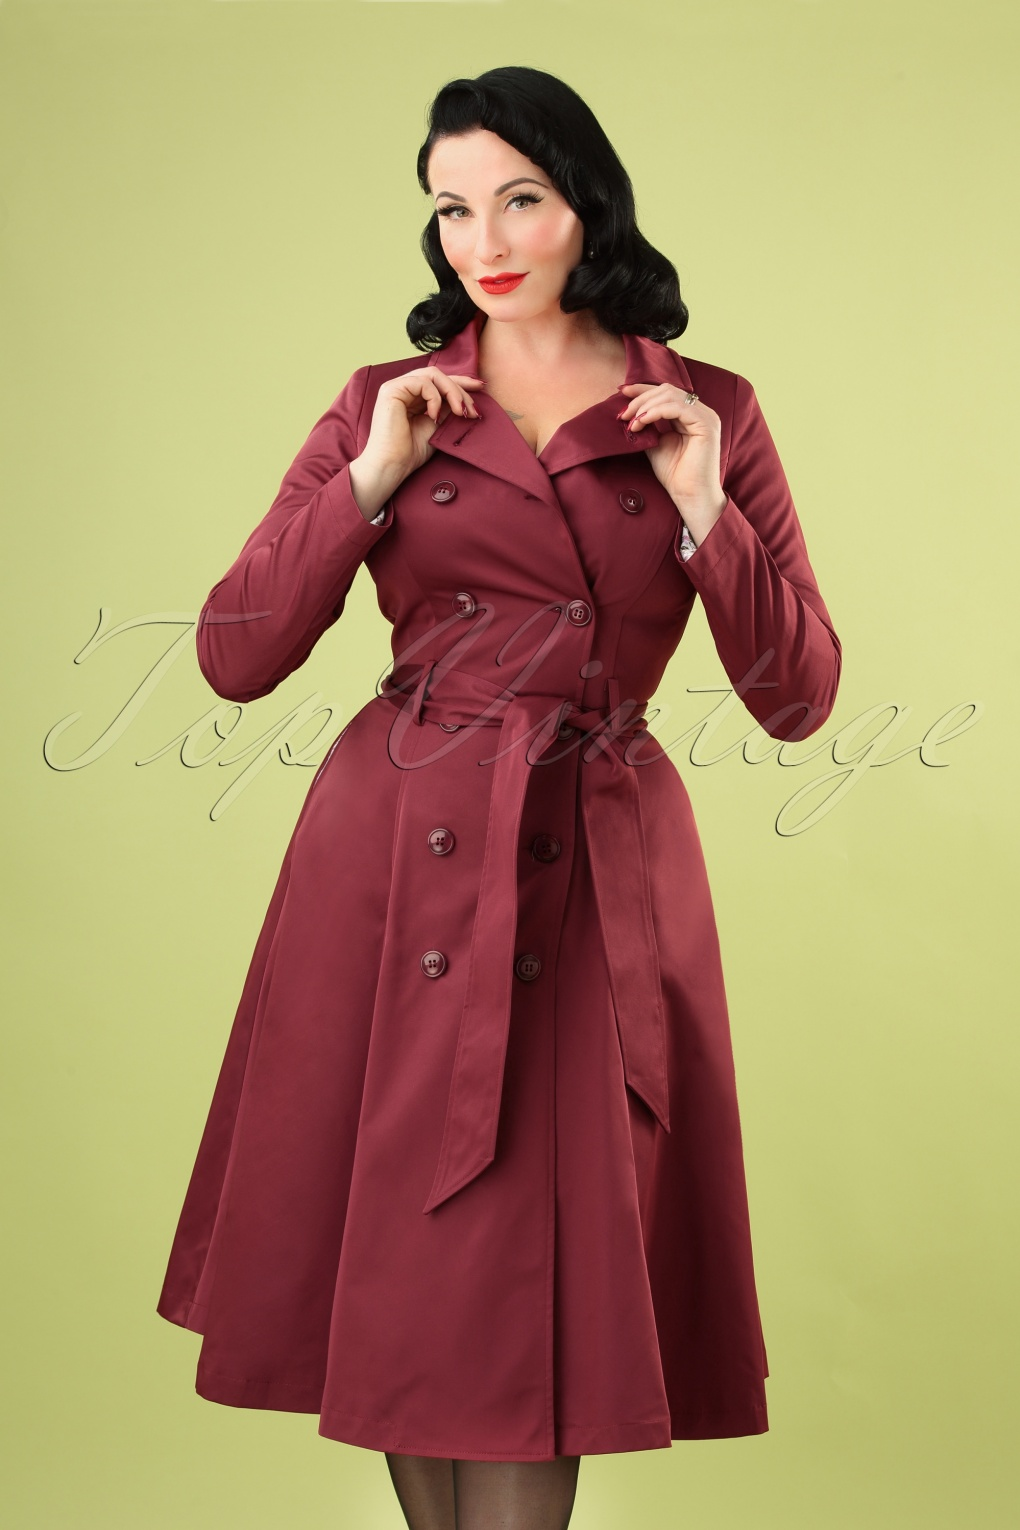 1940s Style Coats and Jackets for Sale 40s Korrina Swing Trench Coat in Burgundy £122.90 AT vintagedancer.com